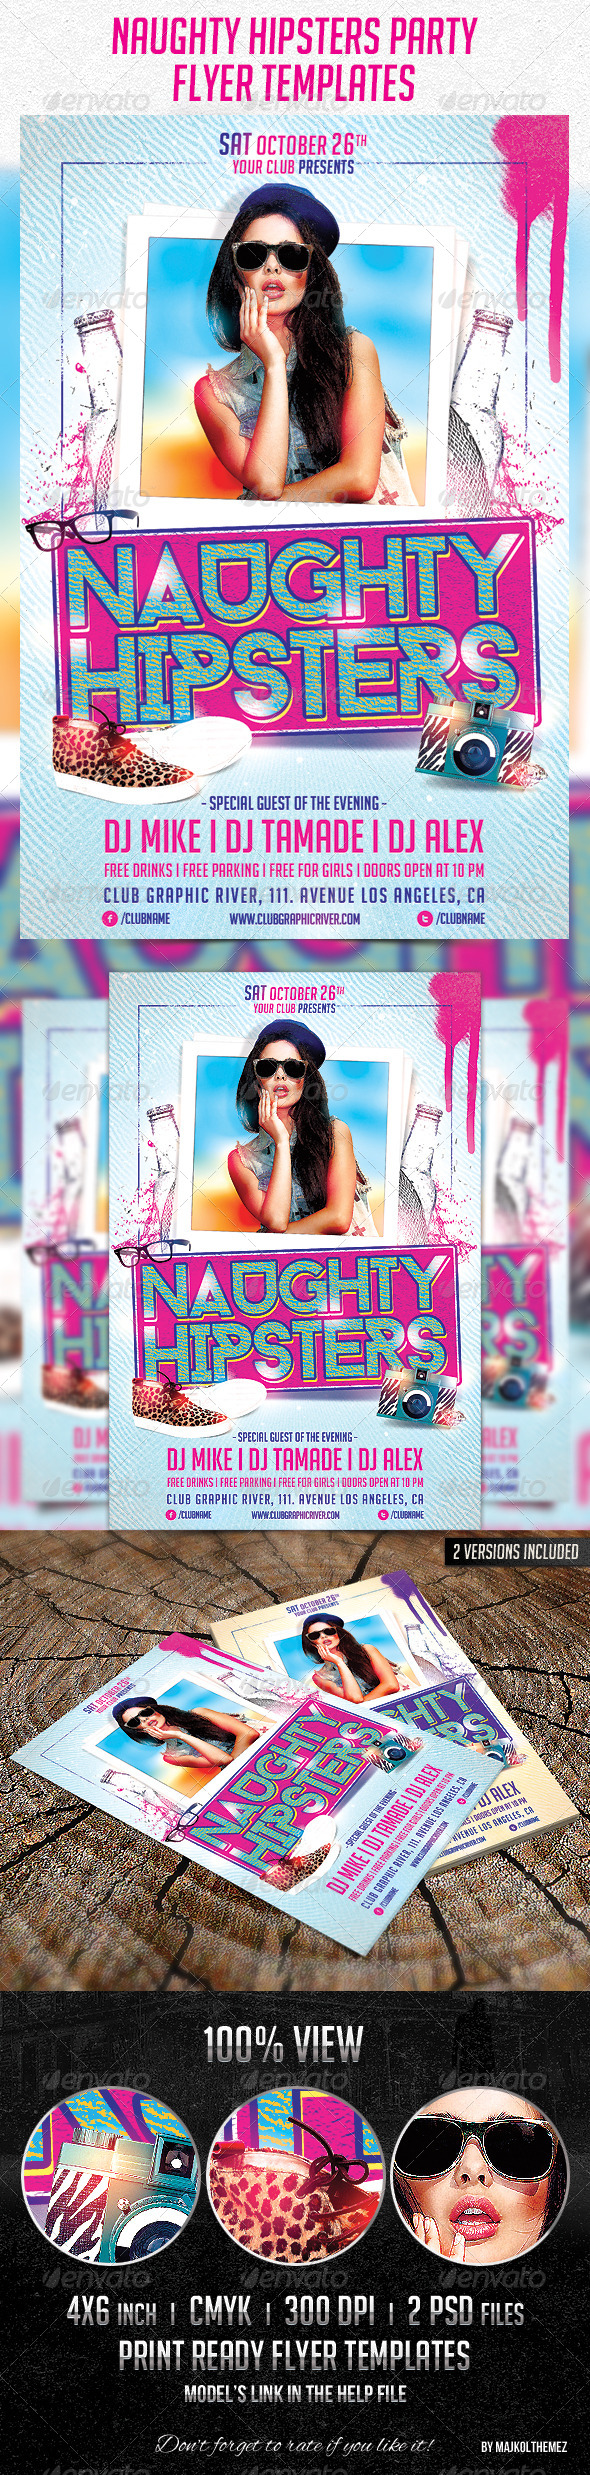 Naughty Hipsters Flyer Templates - Clubs & Parties Events